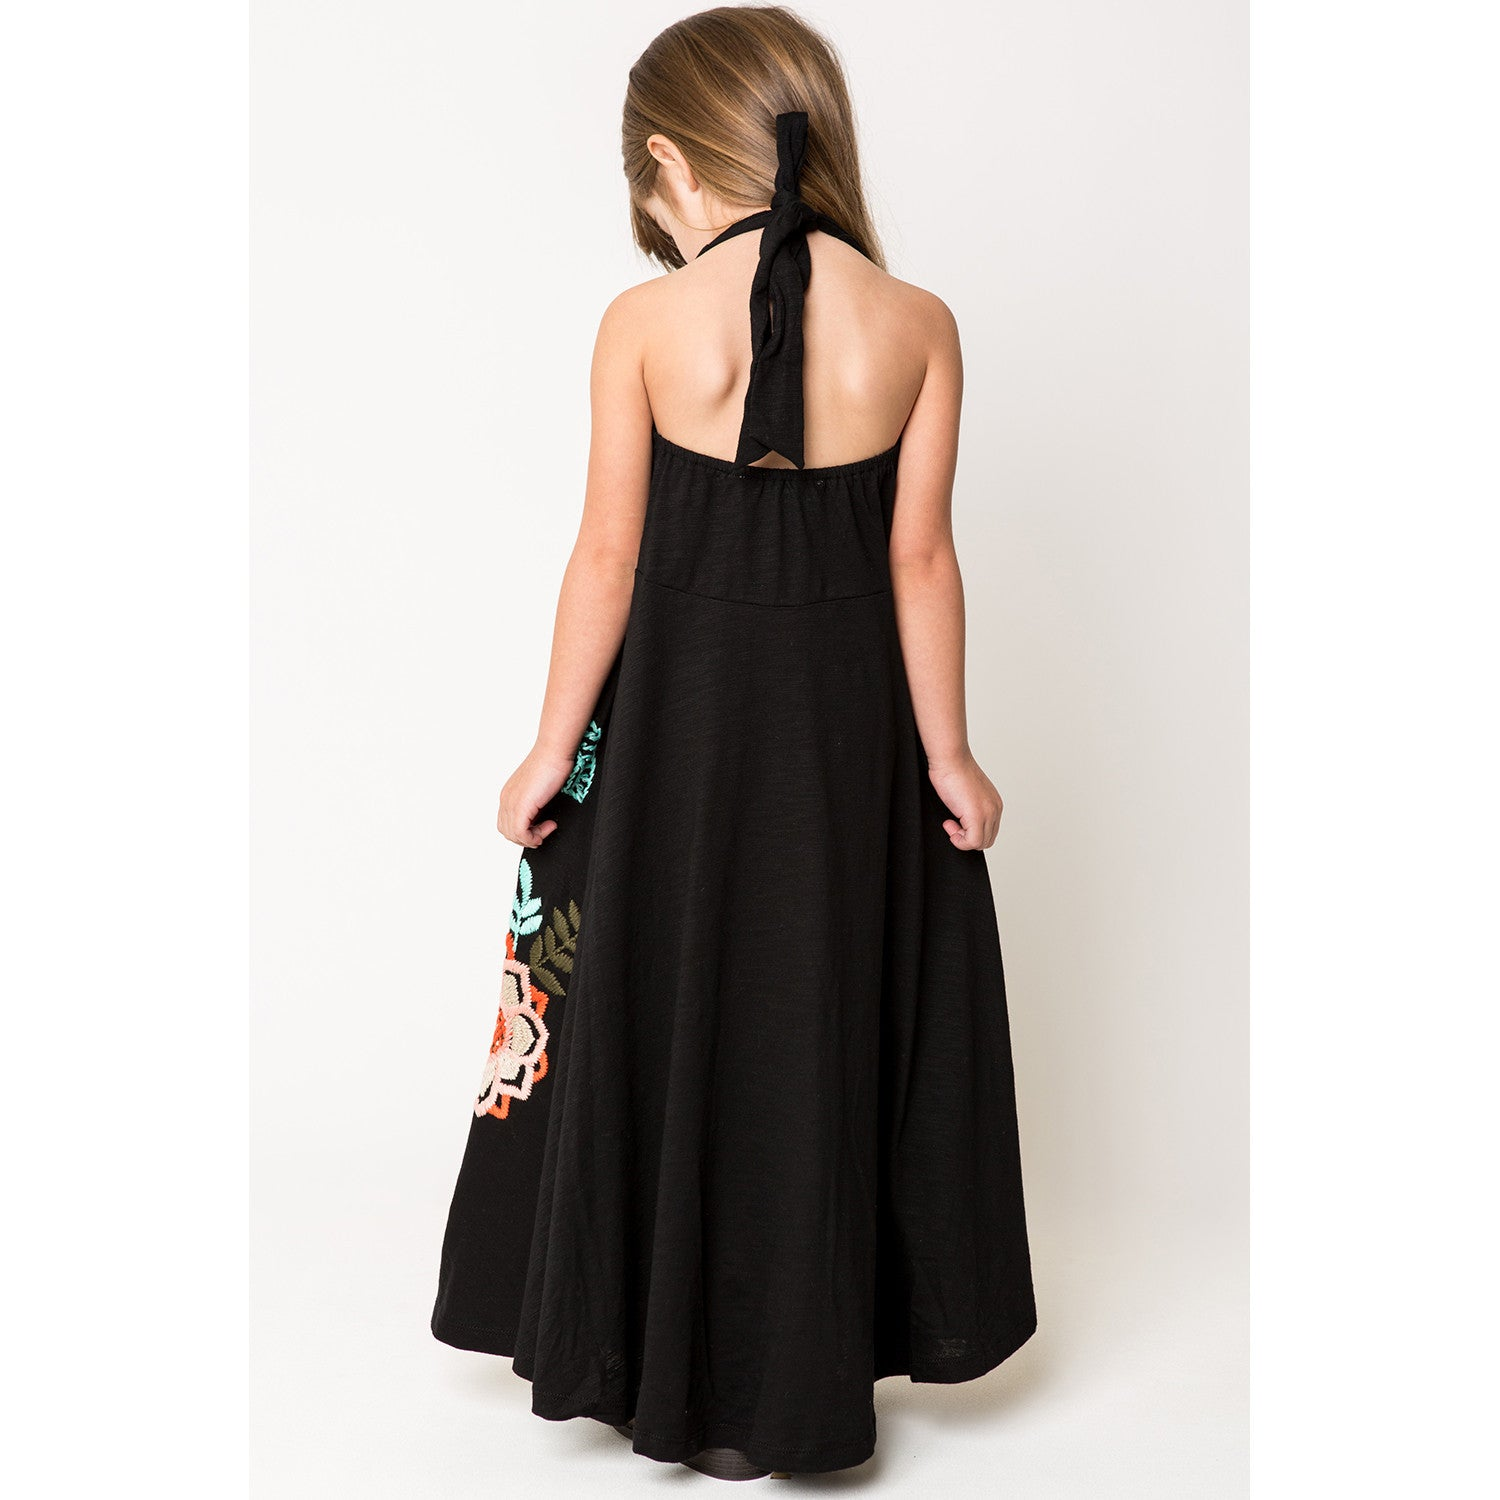 Bird and Floral Embroidery Halter Maxi Dress black back view 1